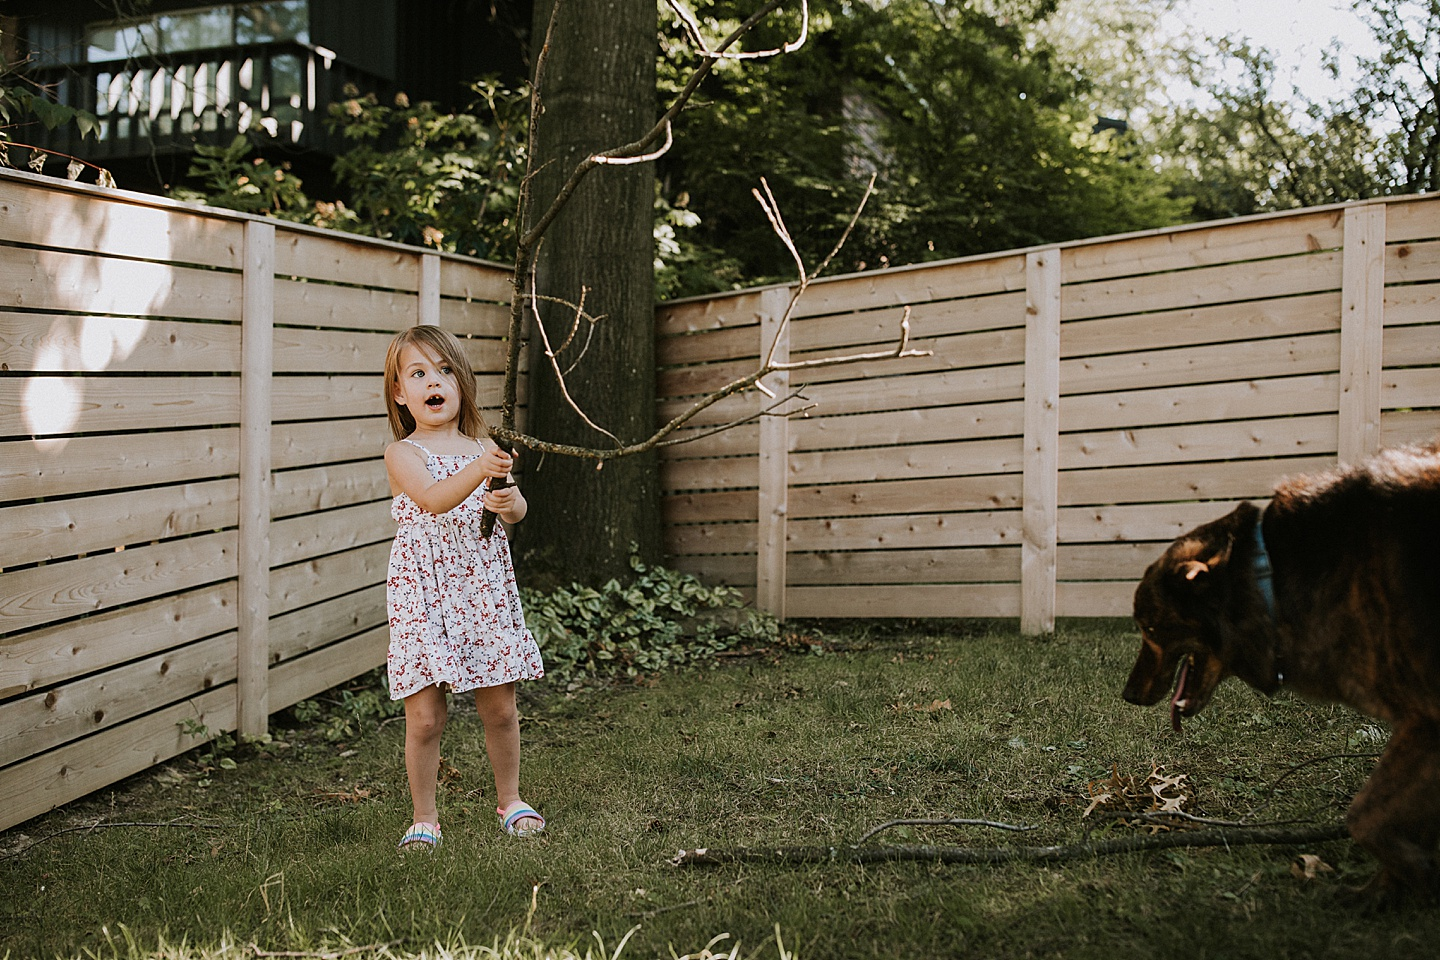 Girl holding a stick in the yard